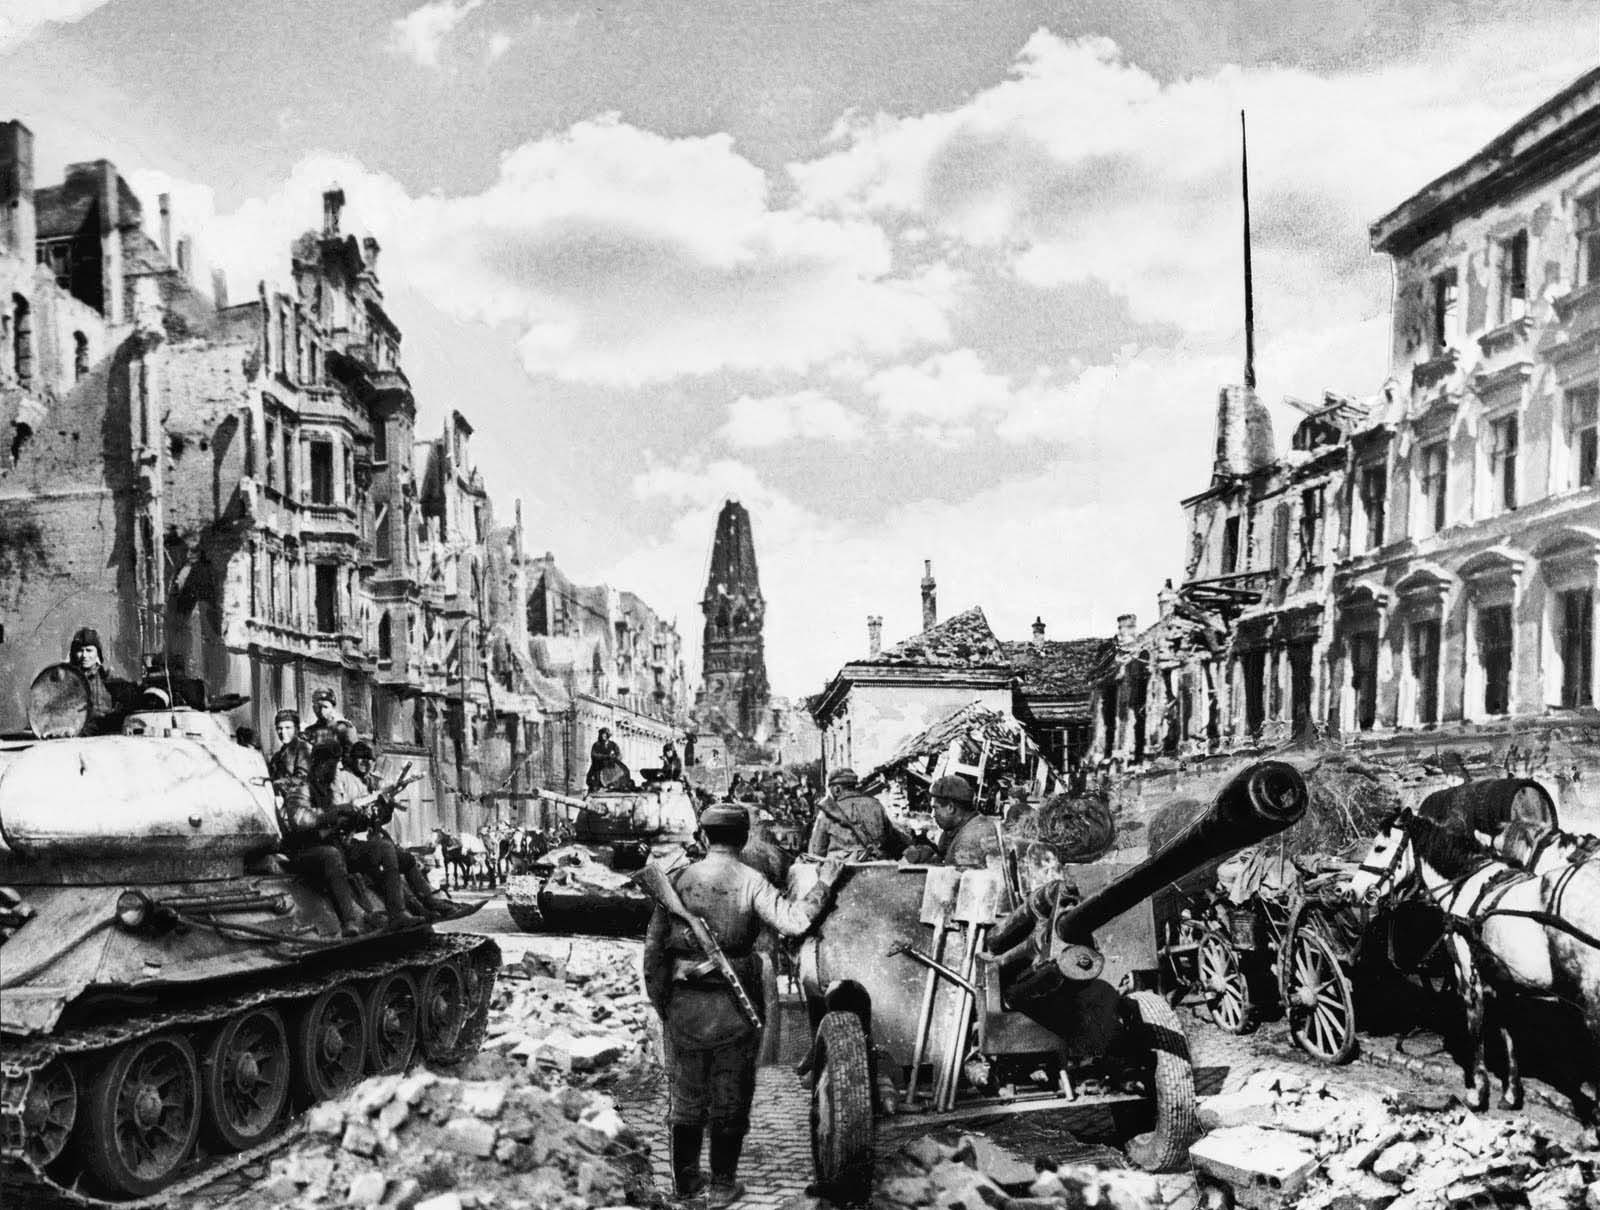 Overall, Berlin was bombed 363 times by British, American and Russian aircraft.